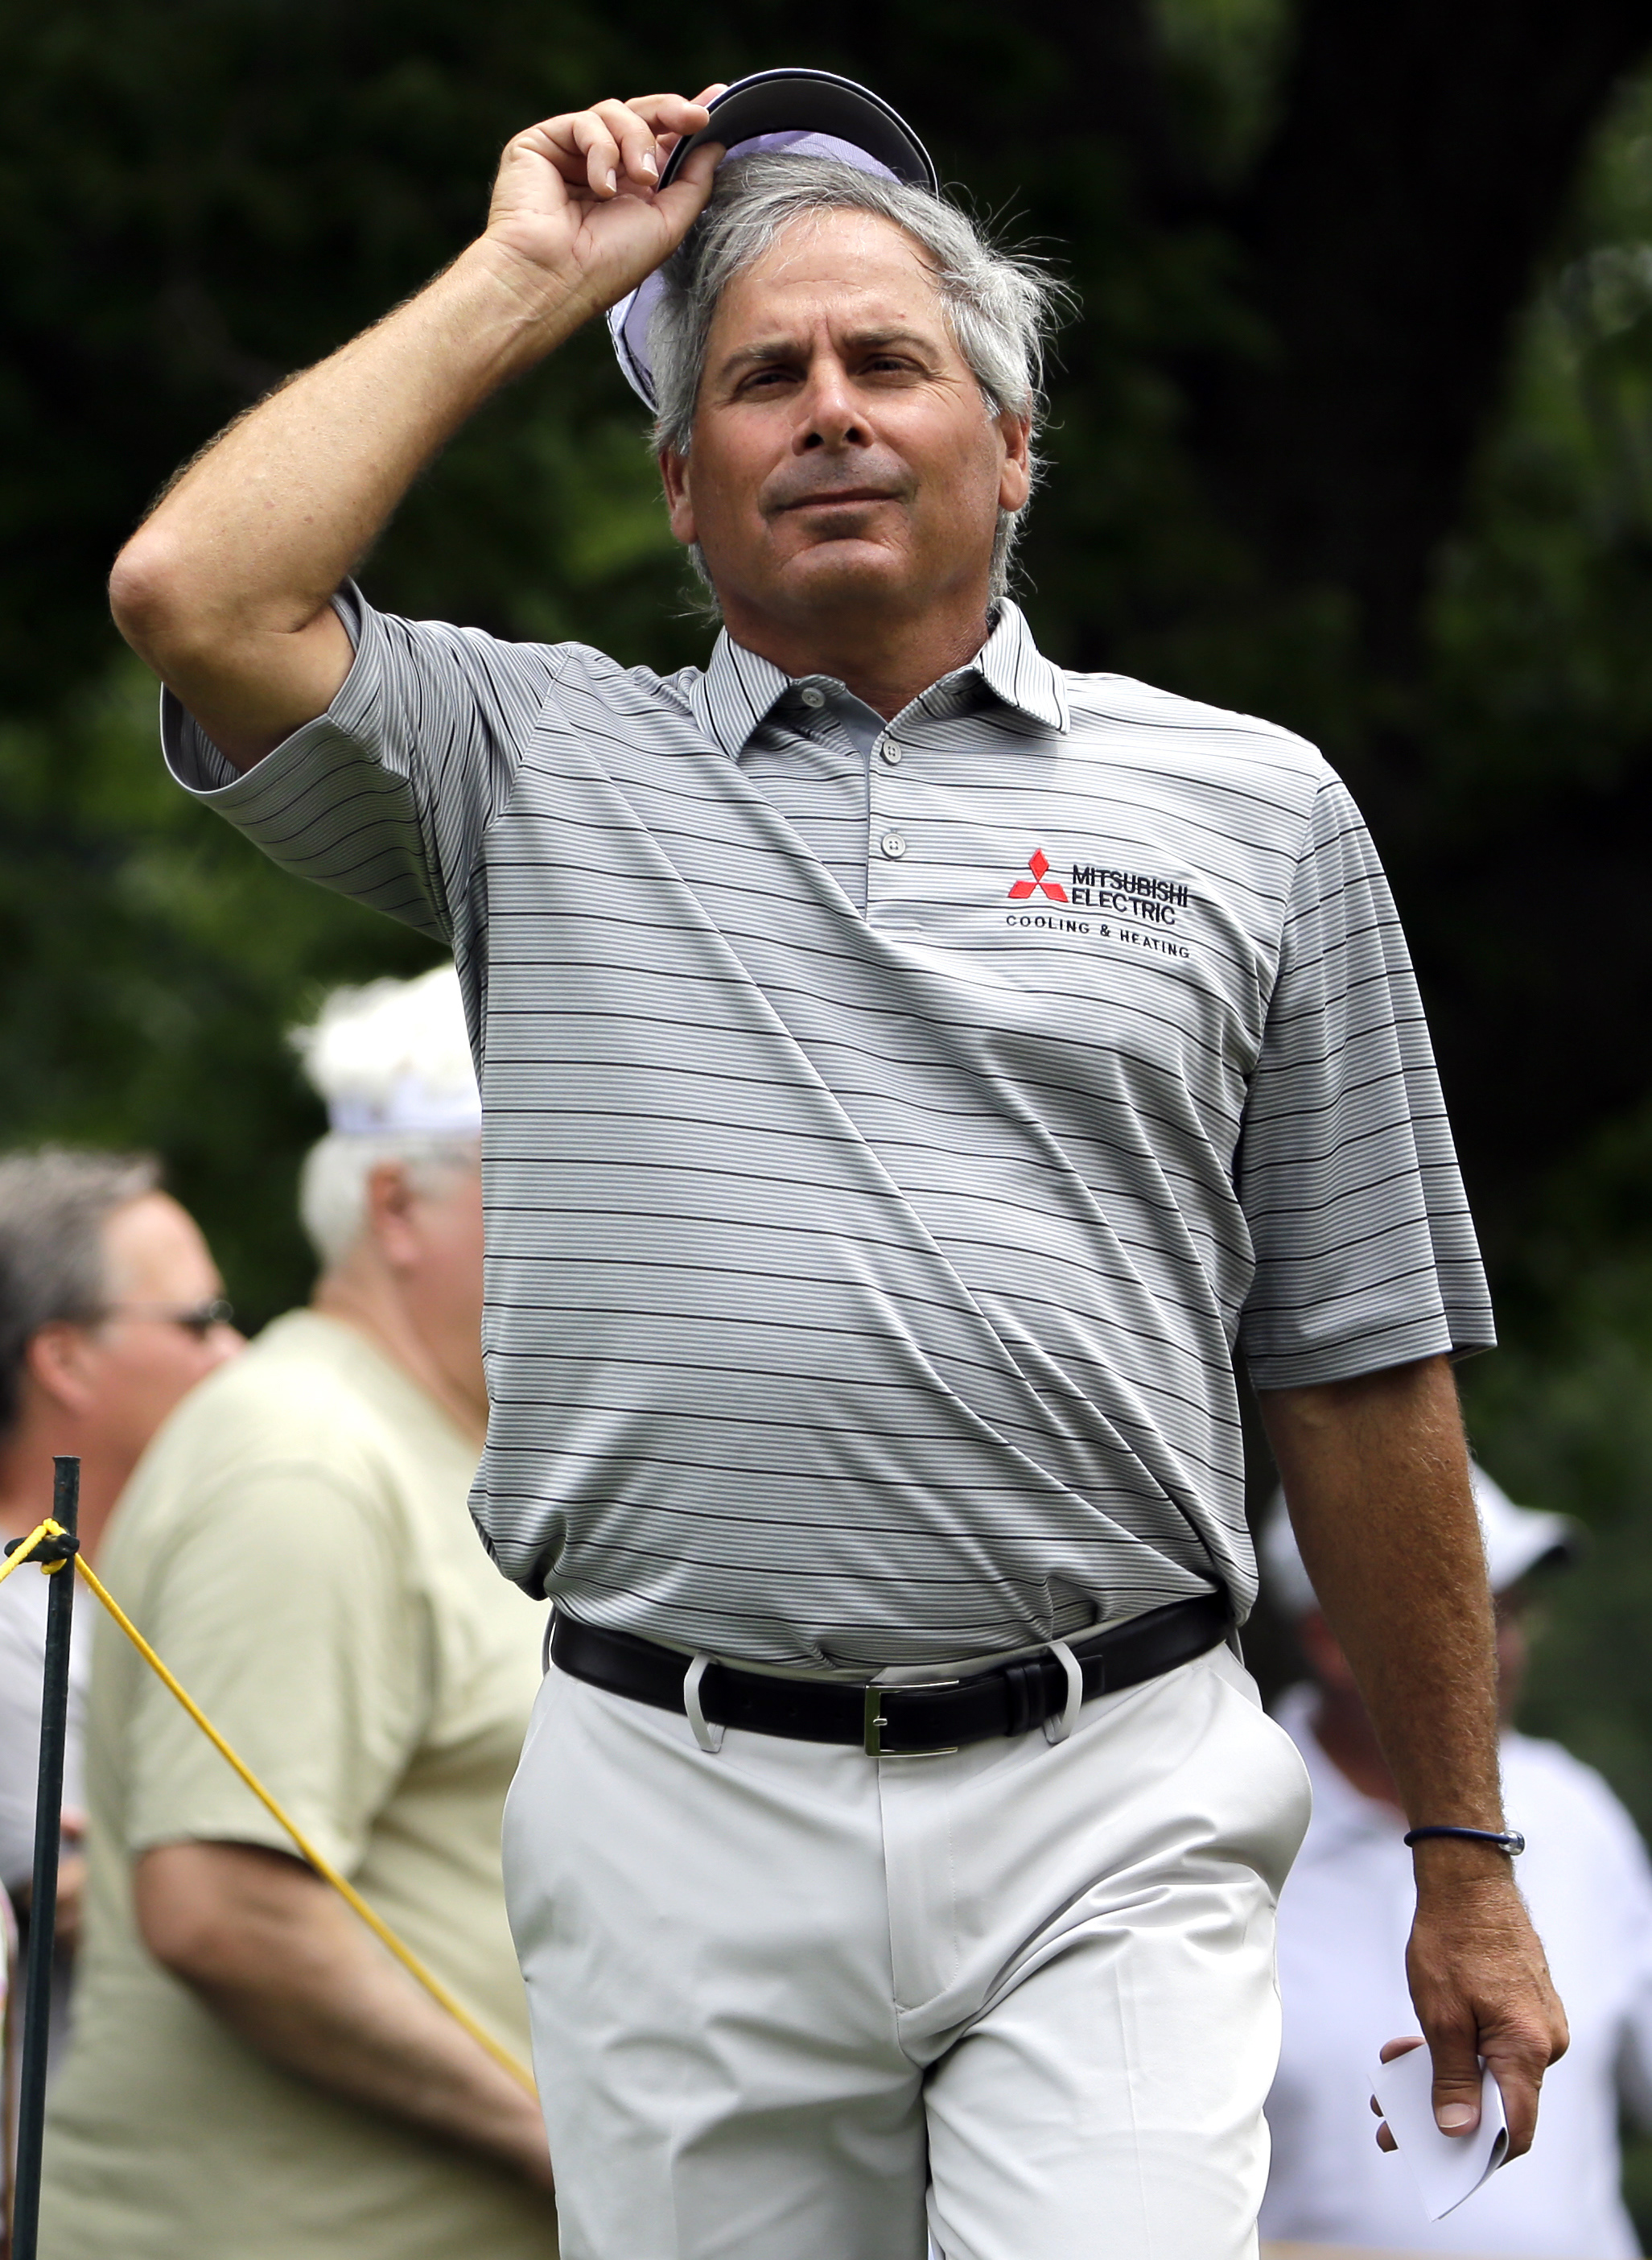 Fred Couples adjusts his cap as he walks to the third hole from the second green during the second round of the Encompass Championship golf tournament Saturday, July 11, 2015, in Glenview, Ill. (AP Photo/Nam Y. Huh)